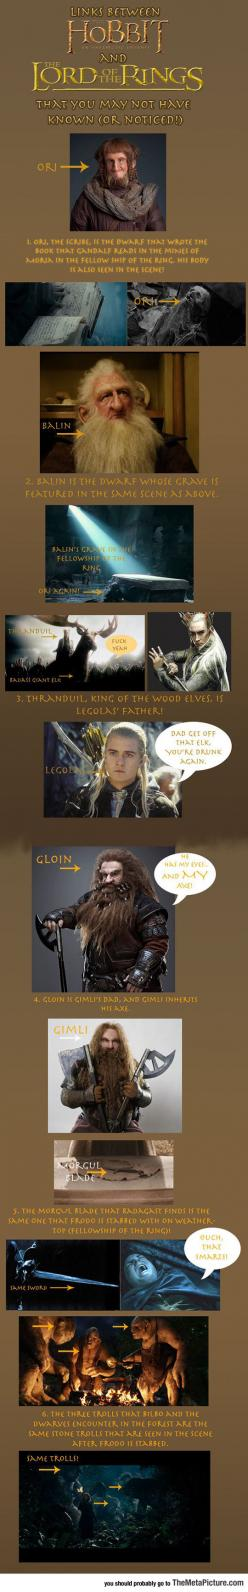 Some Links Between The Hobbit And The Lord Of The Rings